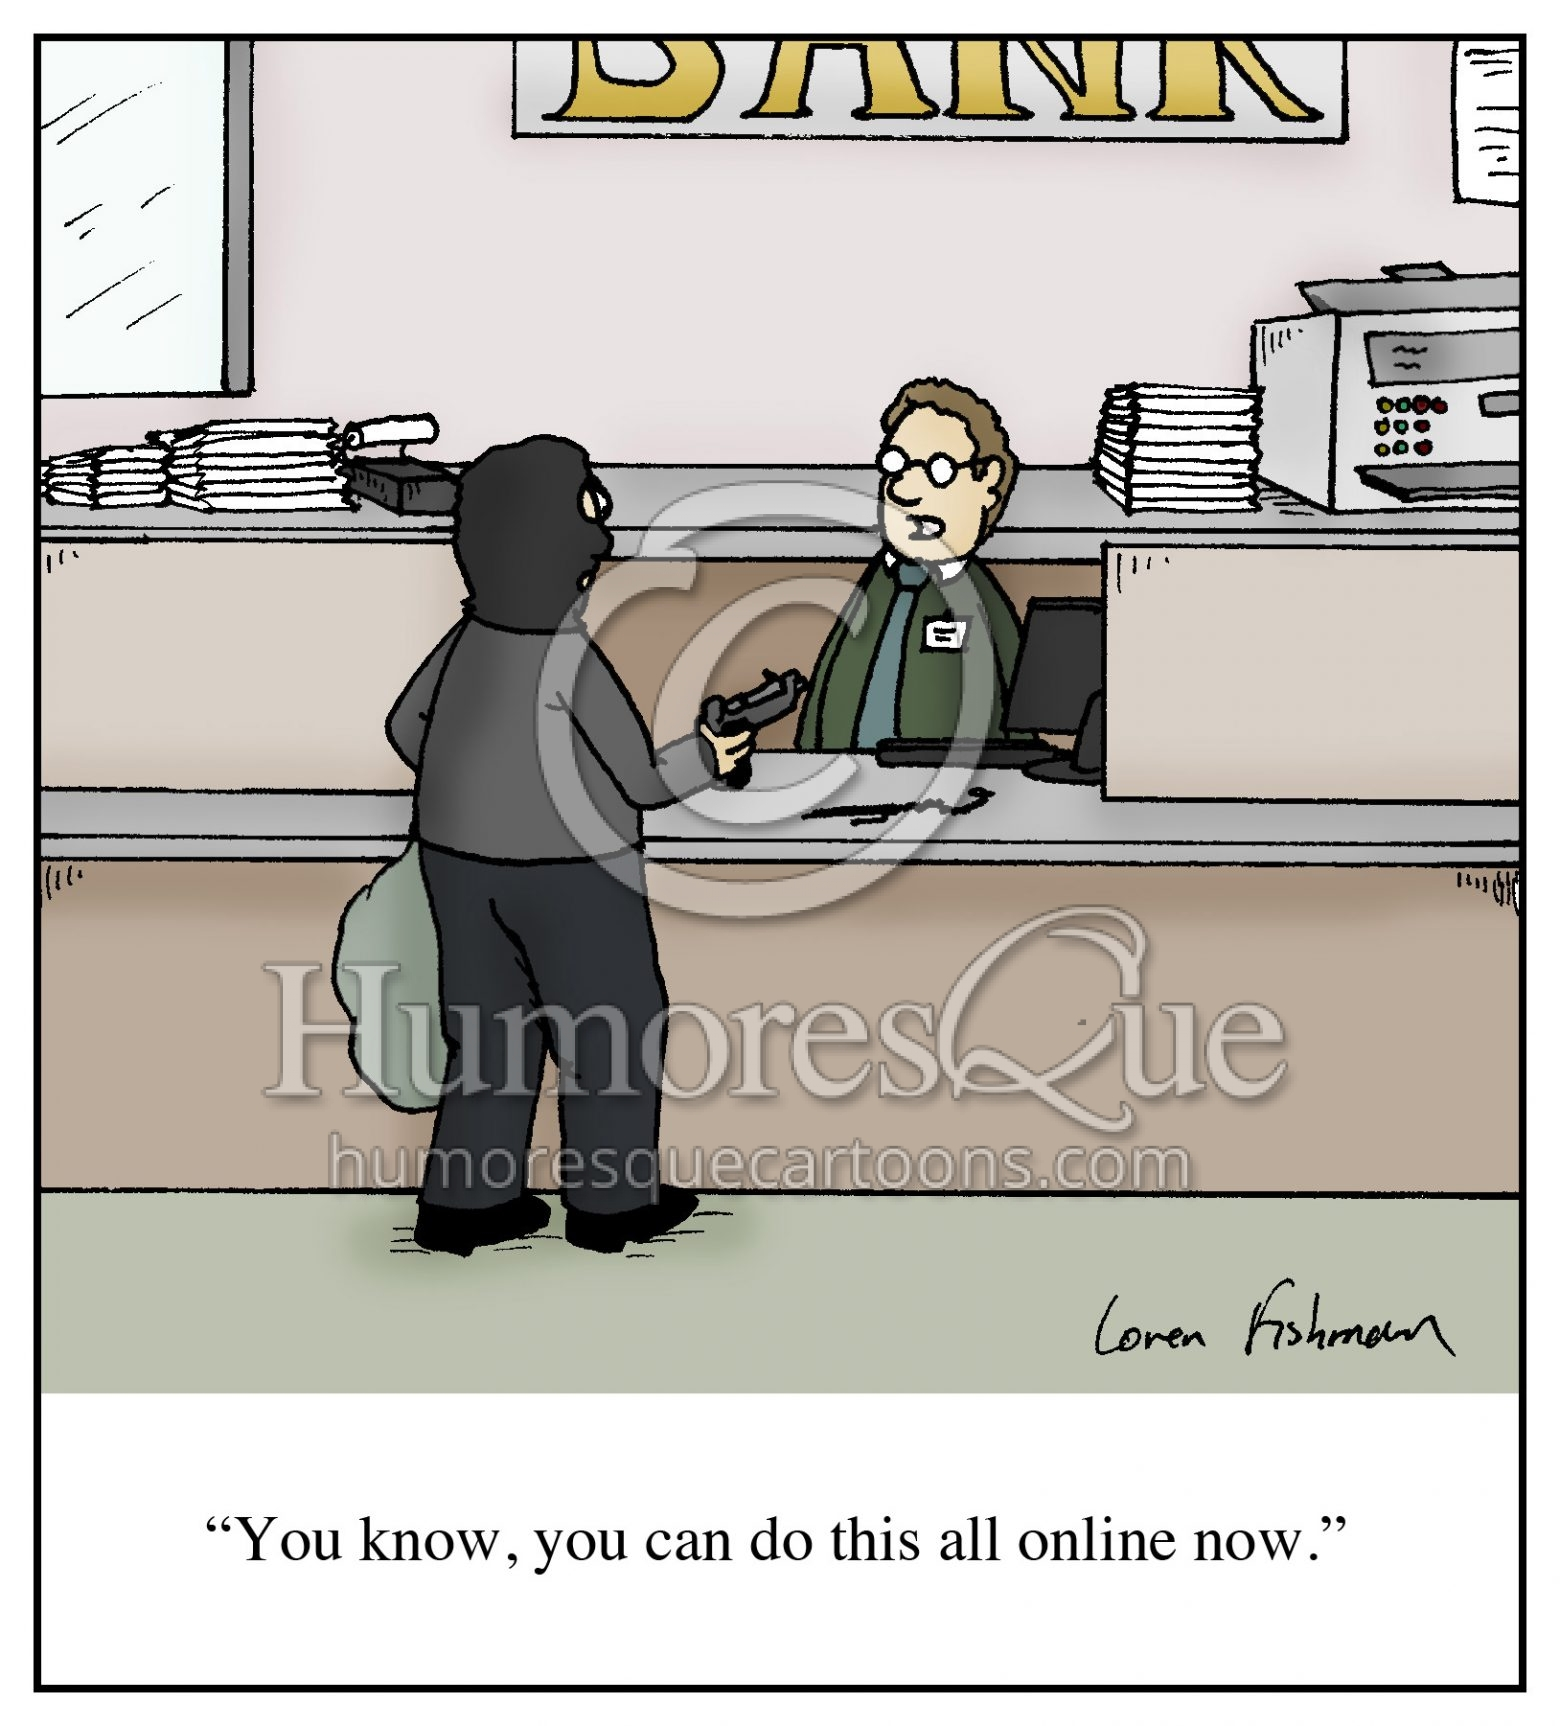 online bank robbery identity theft fraud cartoon